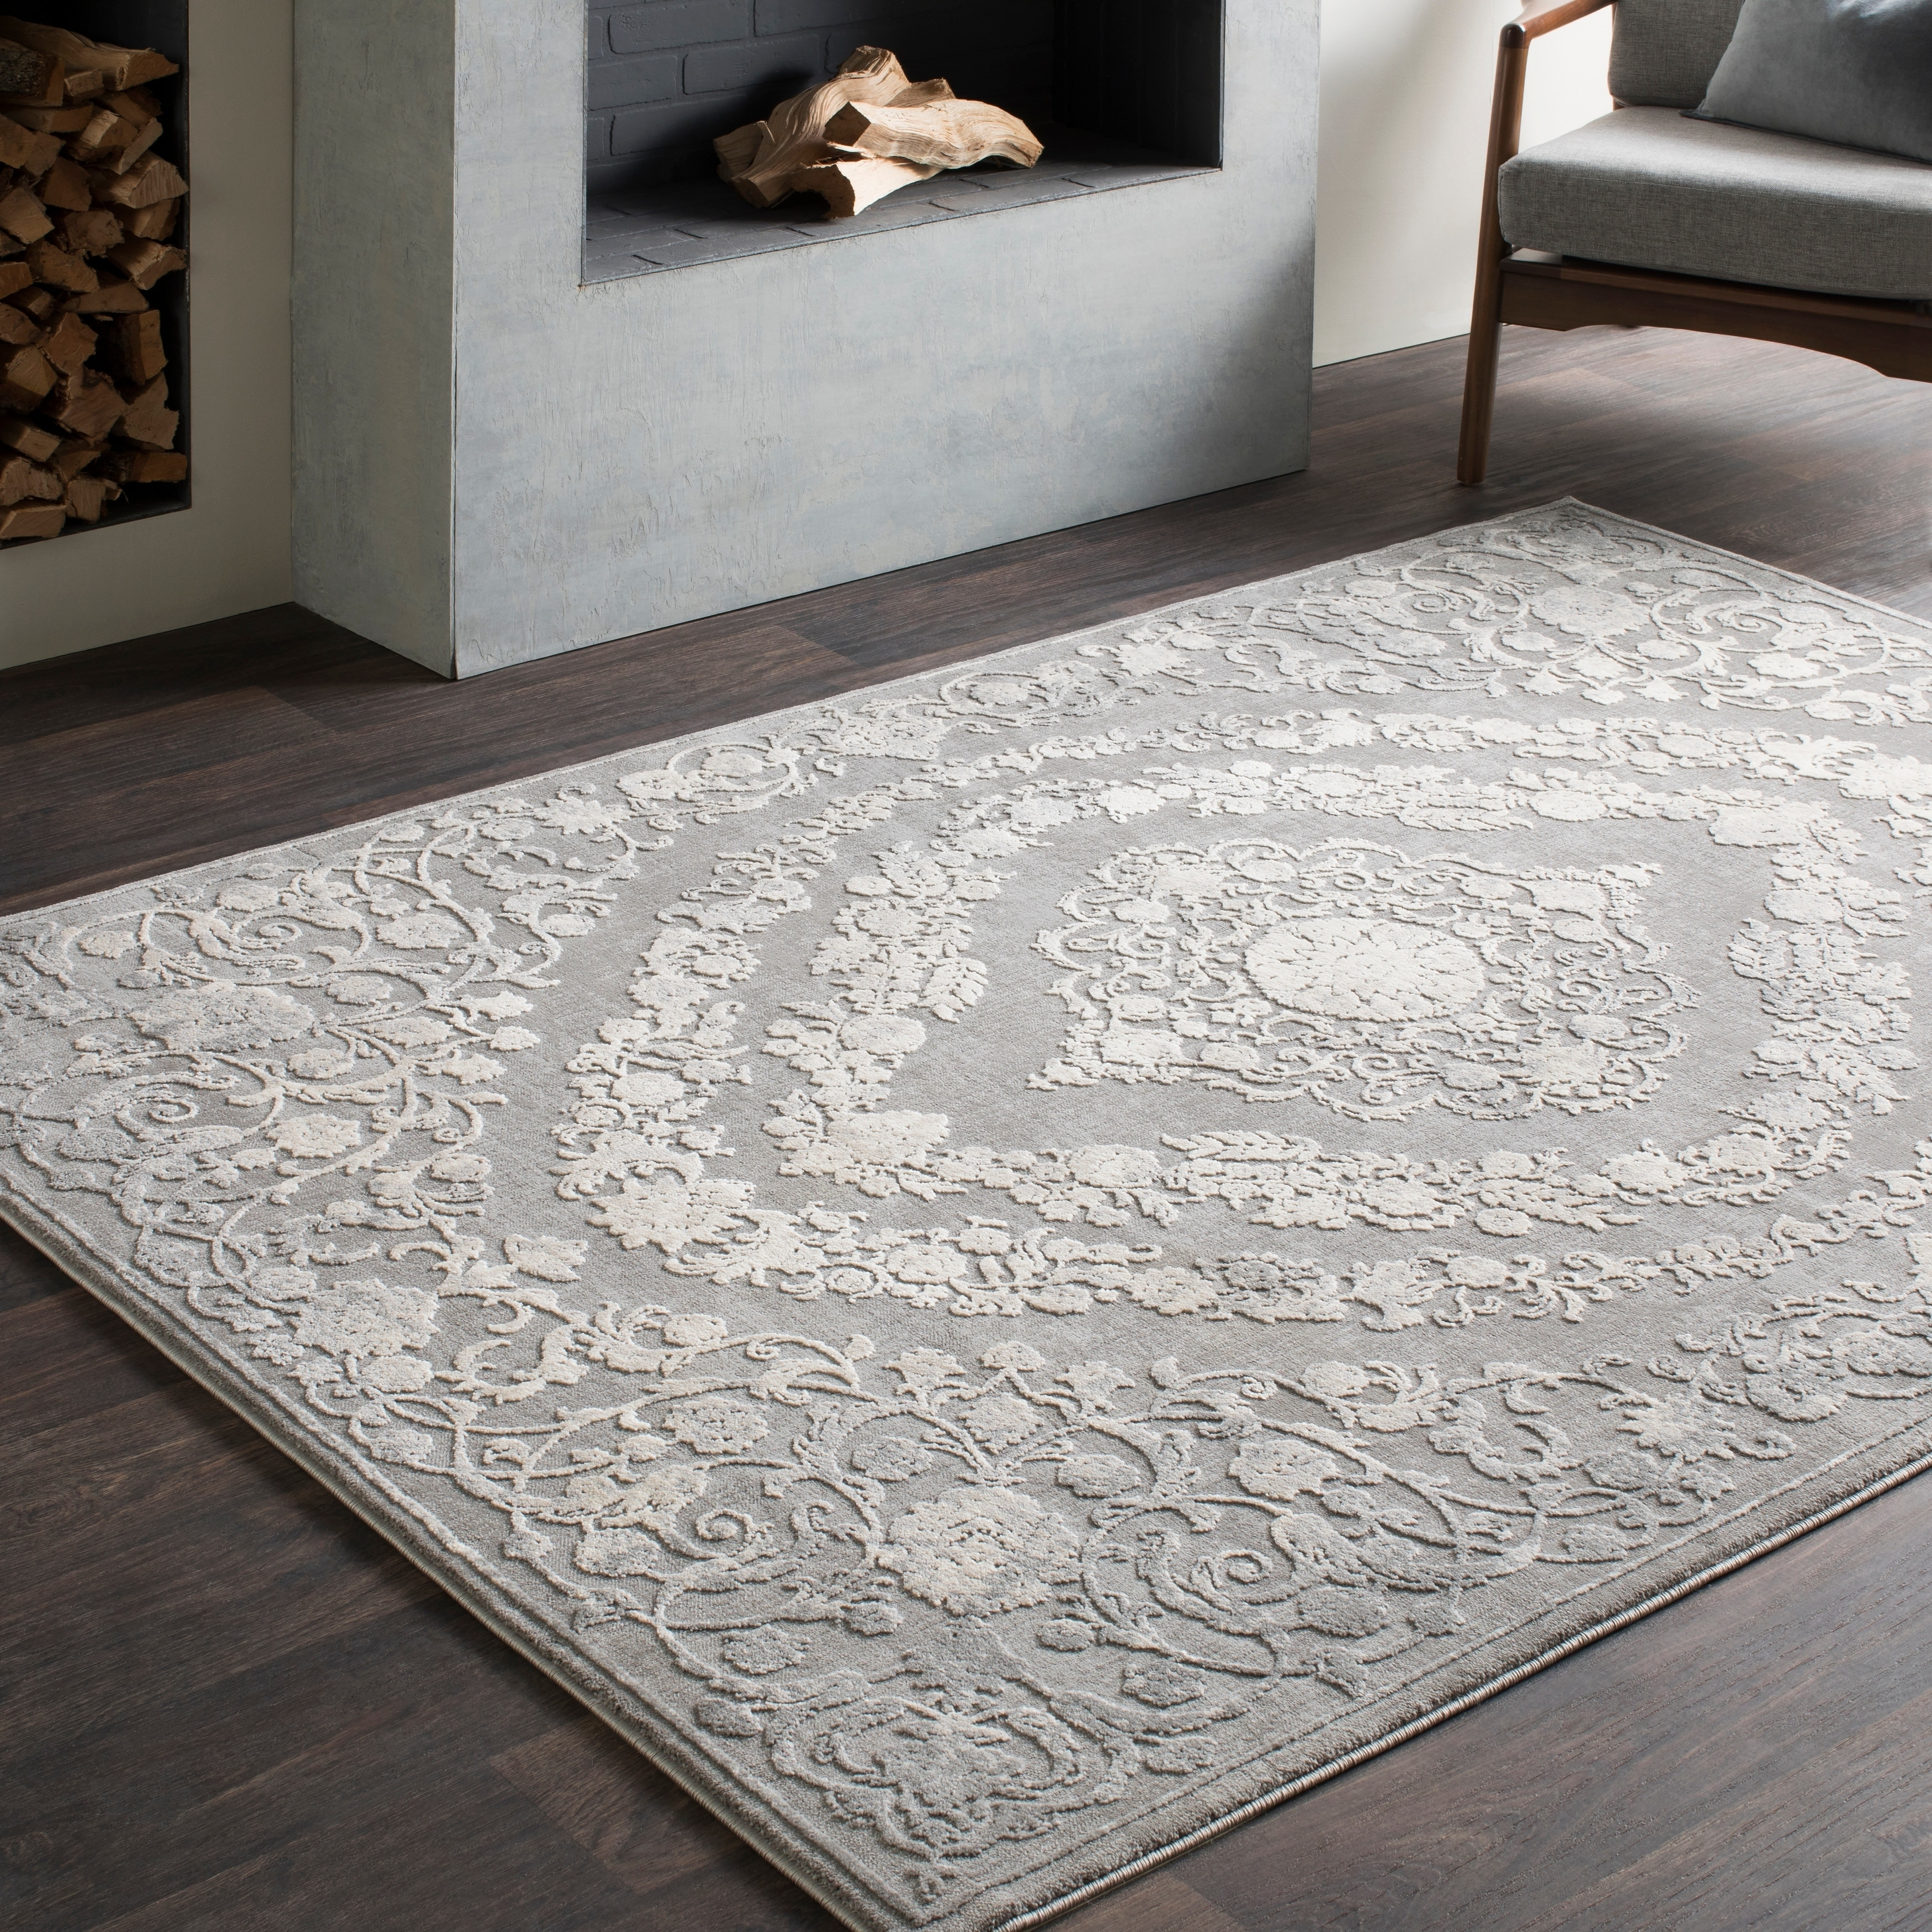 Torrie Floral Medallion Grey Area Rug 7 10 X 10 3 On Sale Overstock 15949723